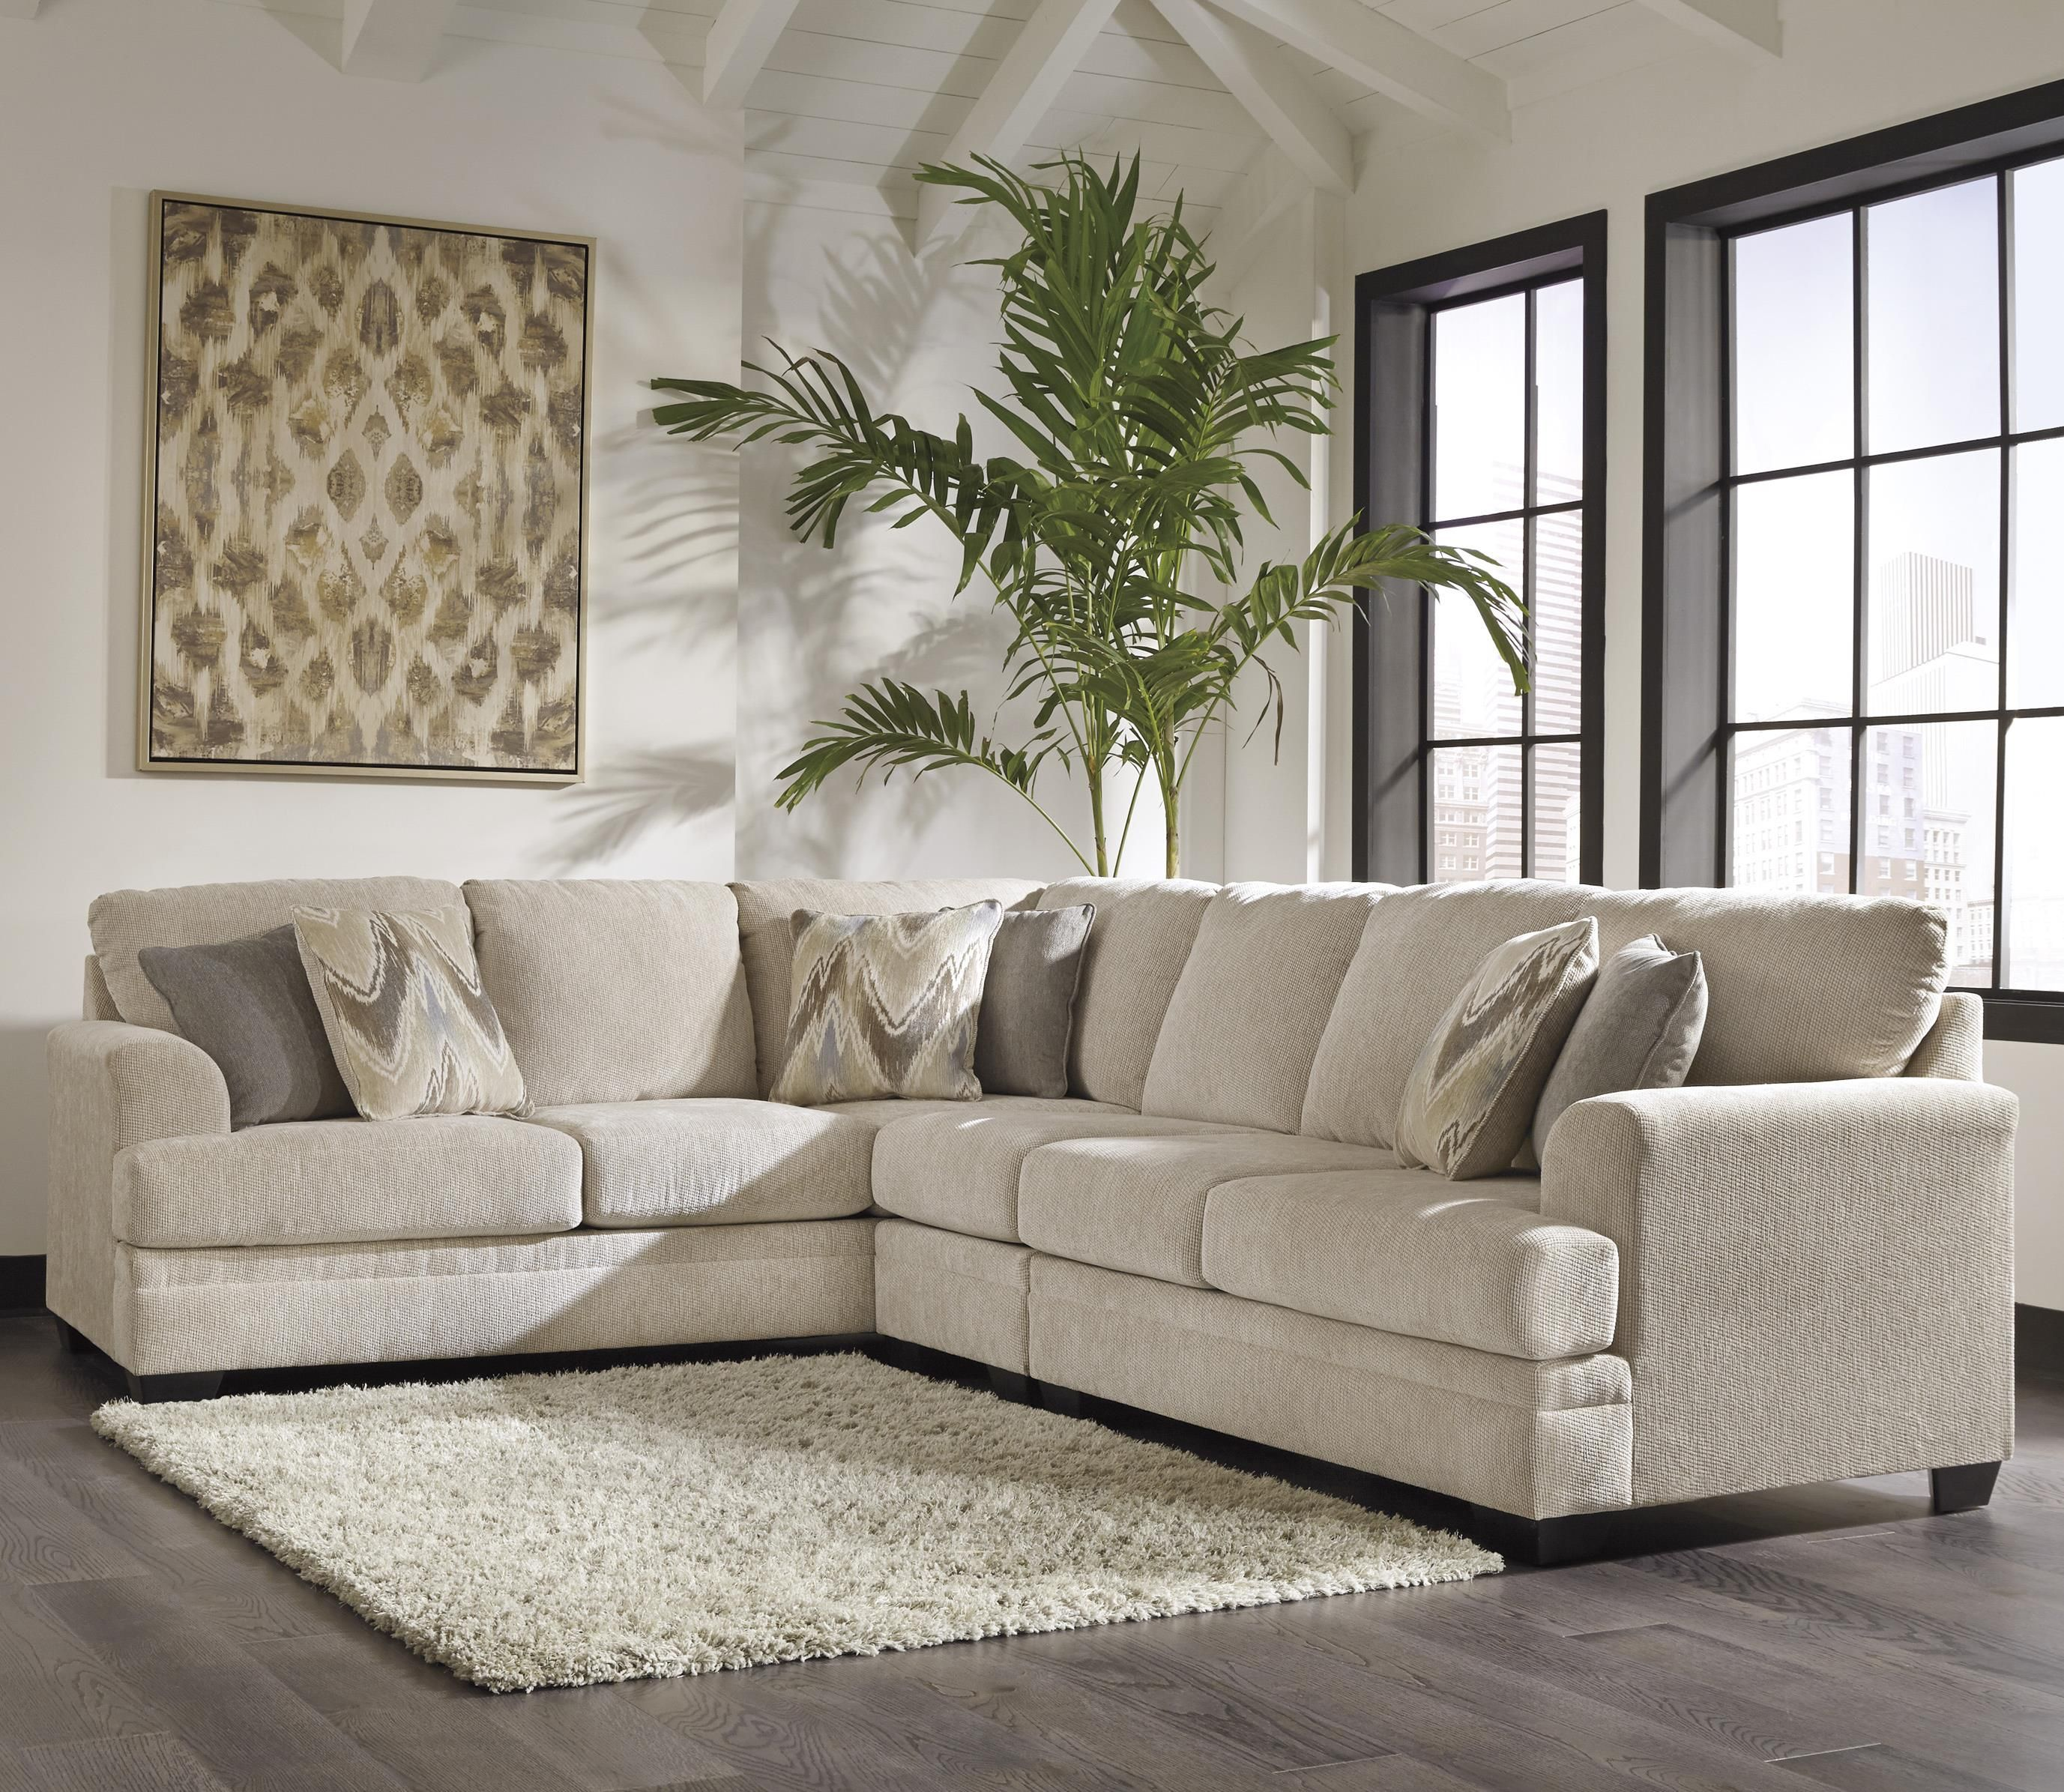 maier item benchcraft charcoal sectional w and products sleeper sofa chaise piece